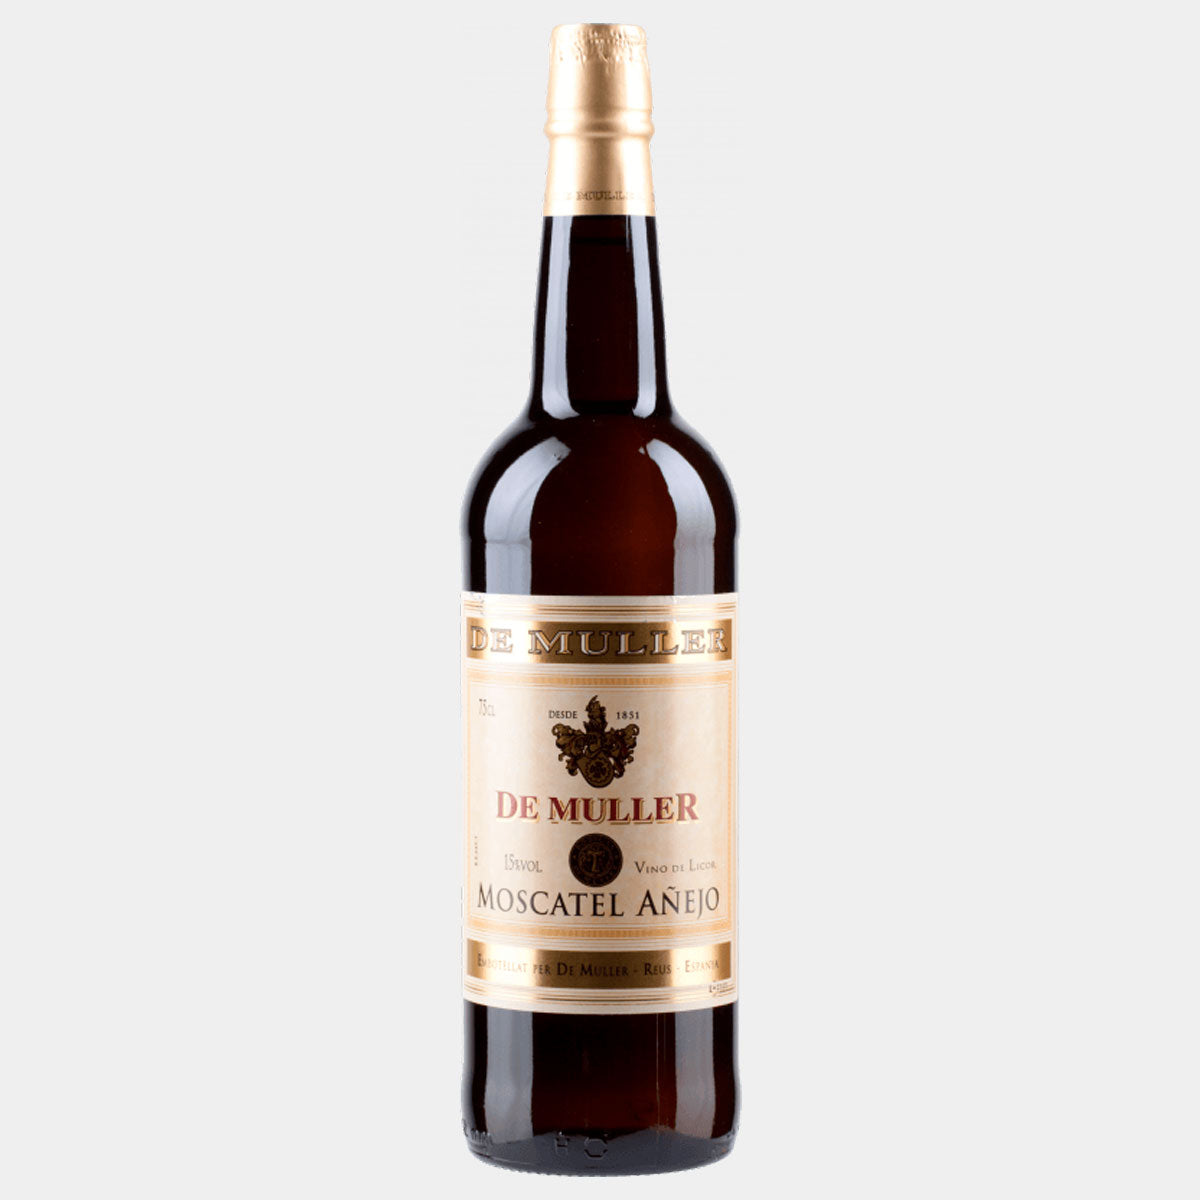 De Muller Moscatel Añejo - Wines and Copas Barcelona